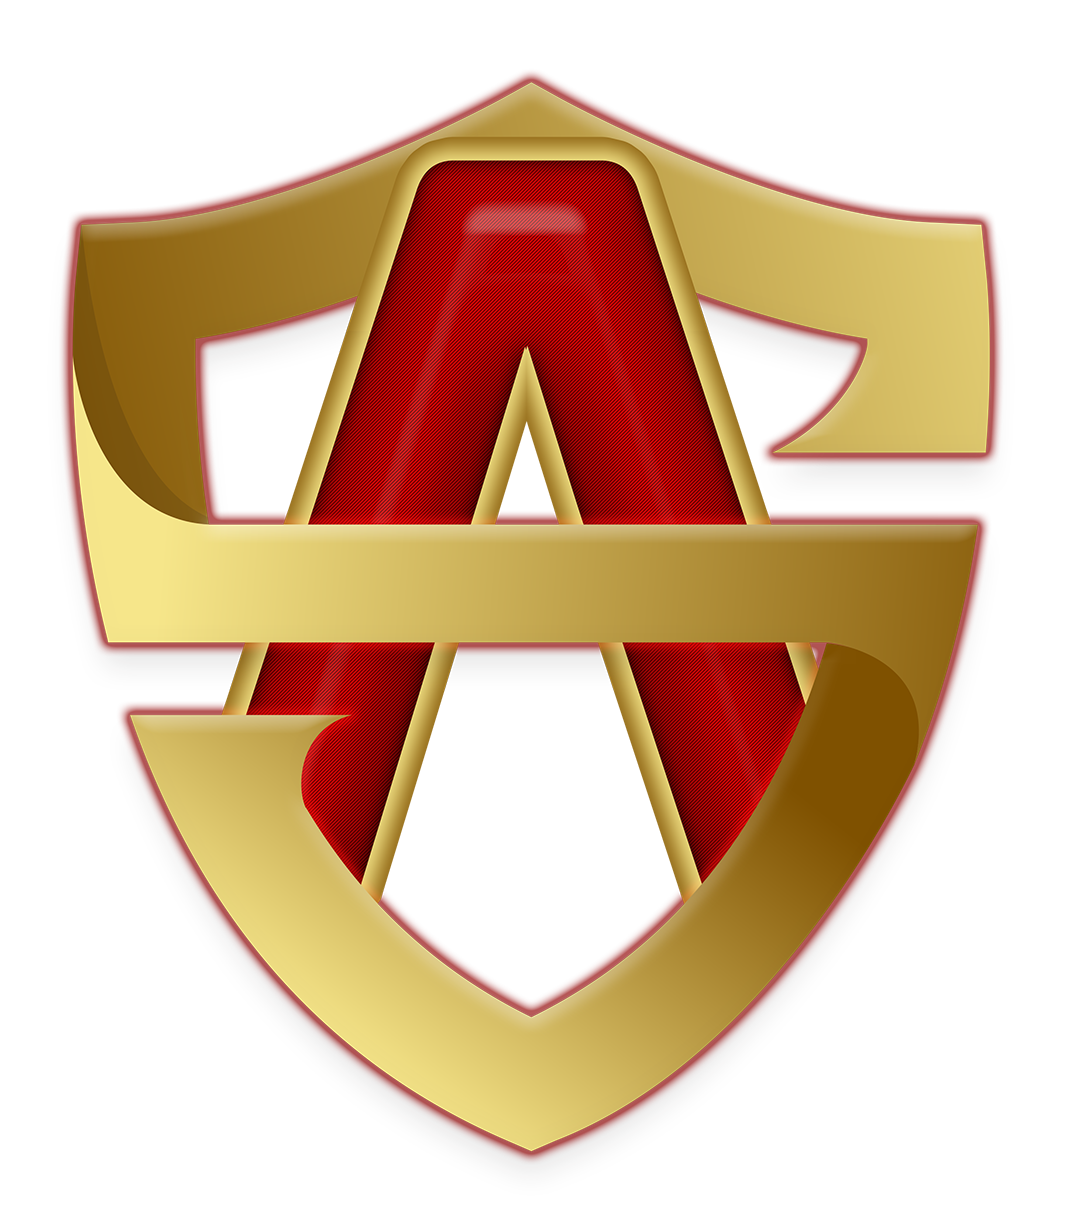 AllianceX logo.